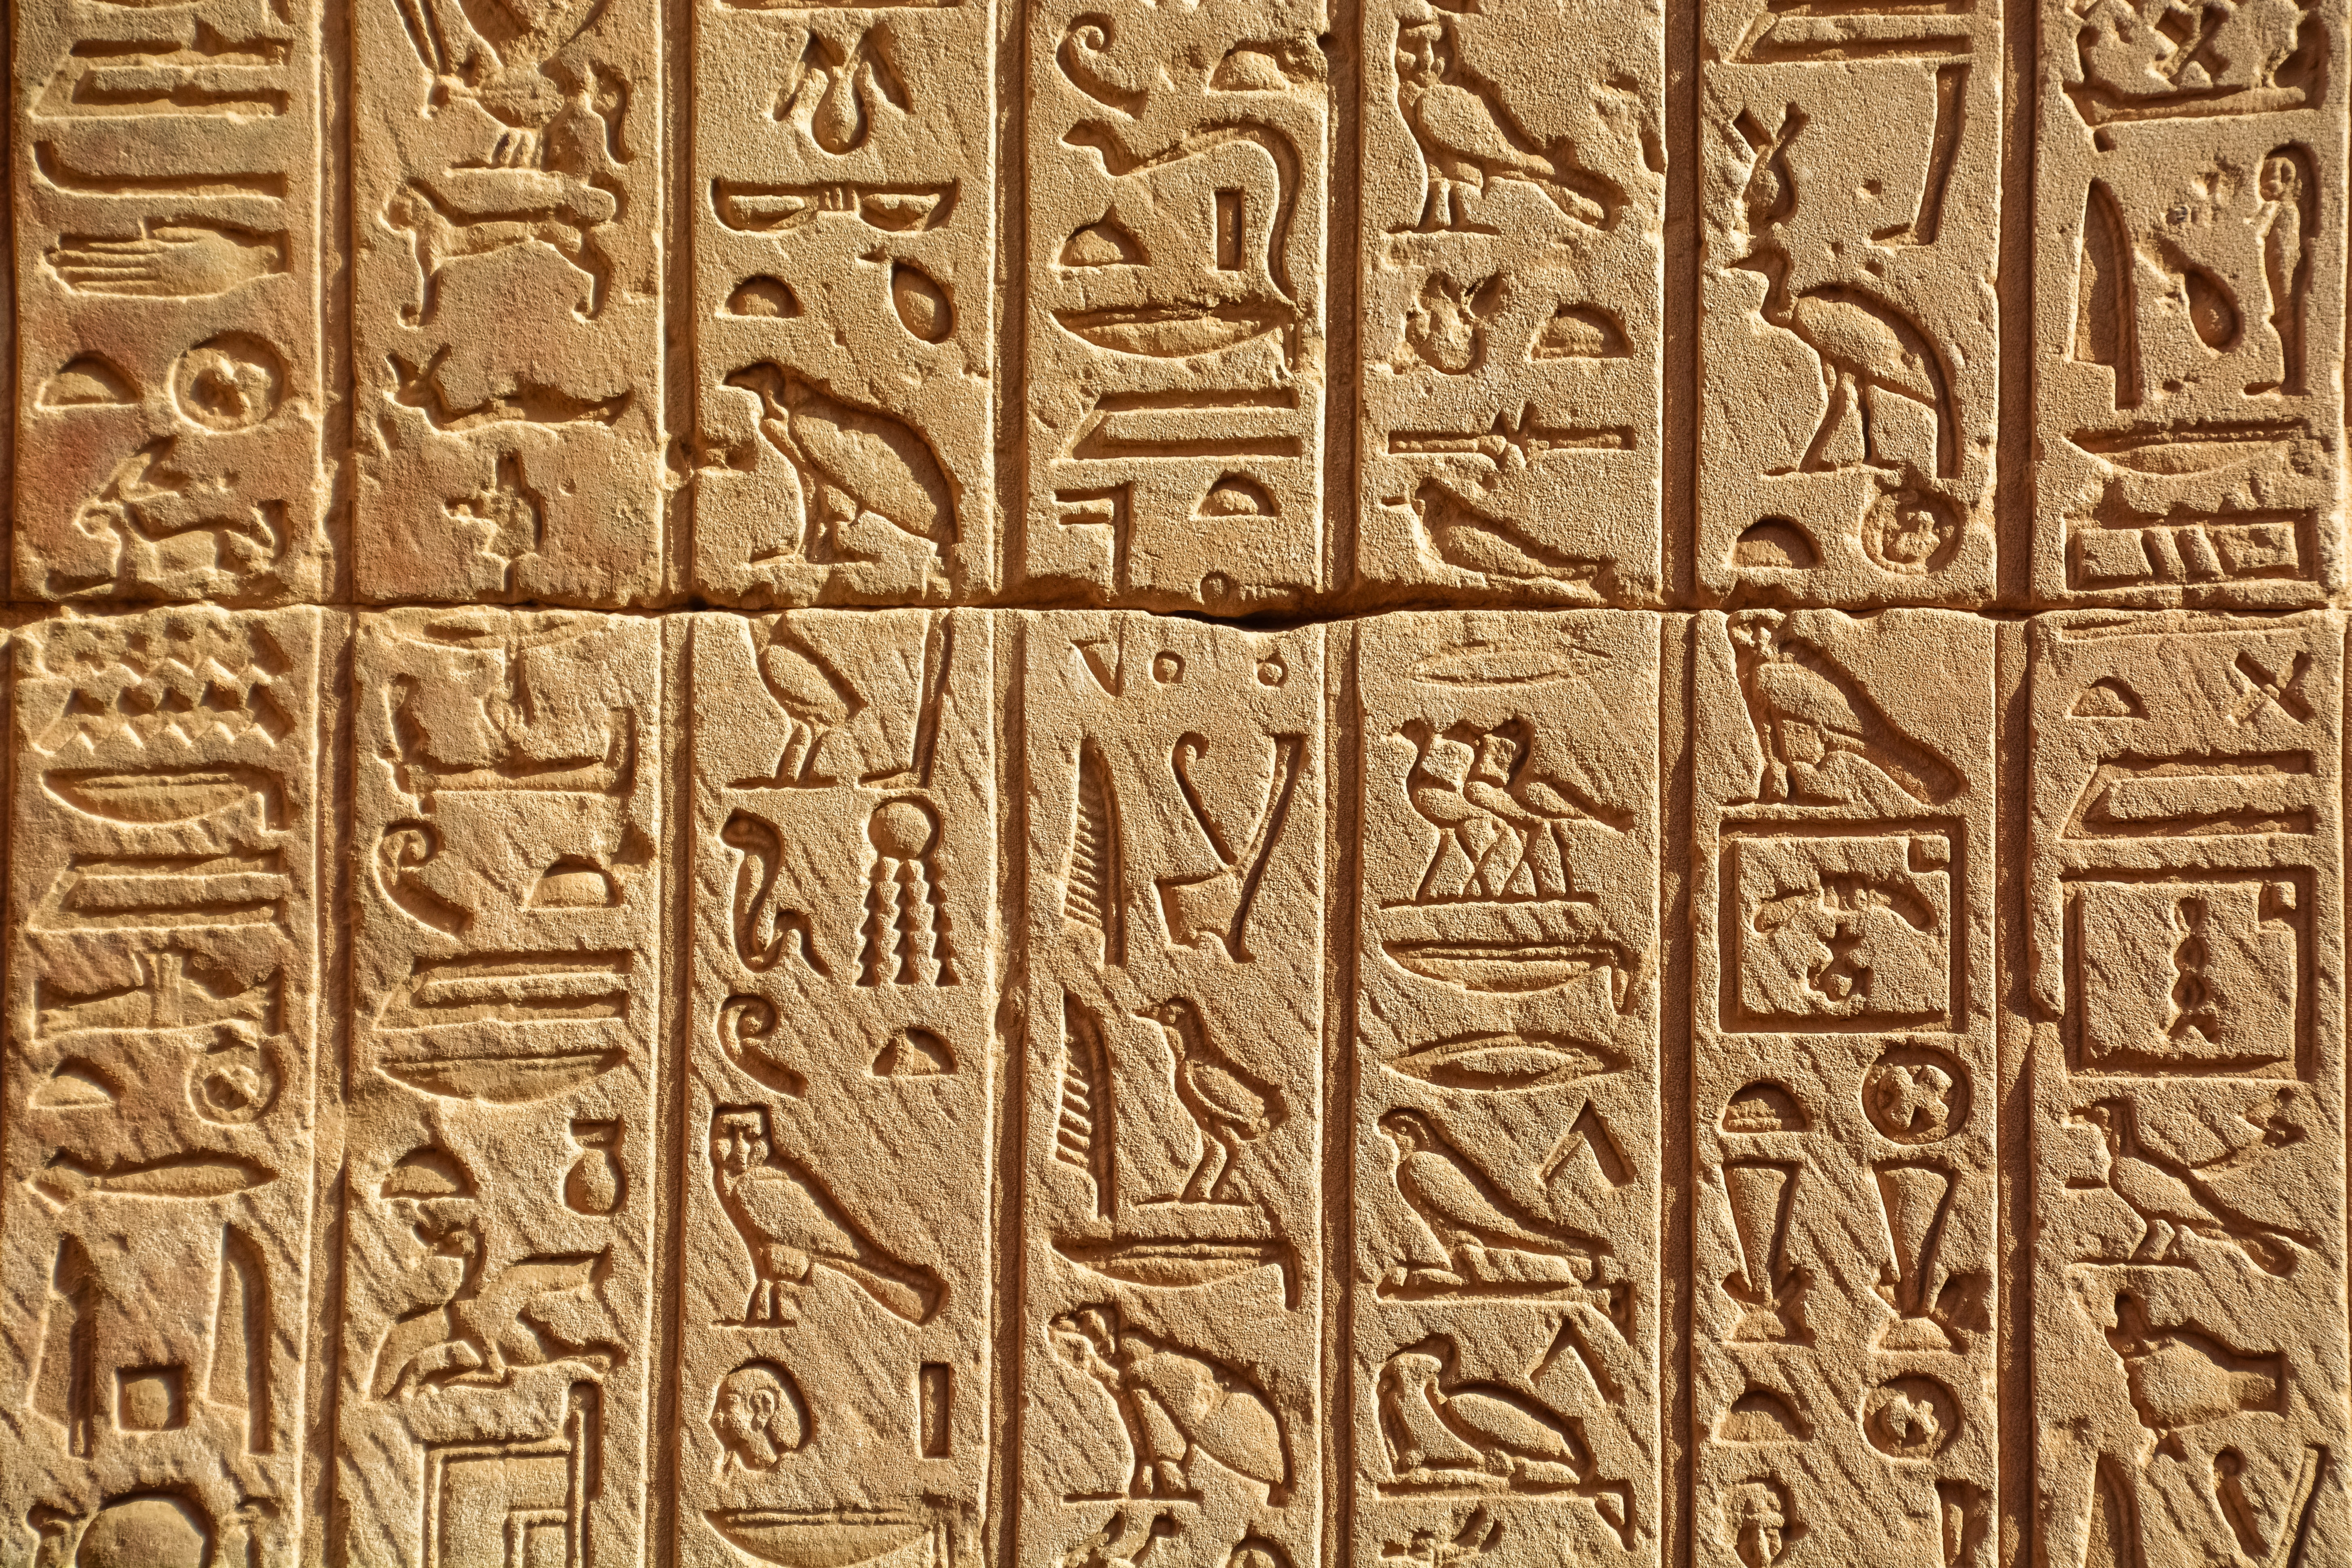 Scriptures at Abydos